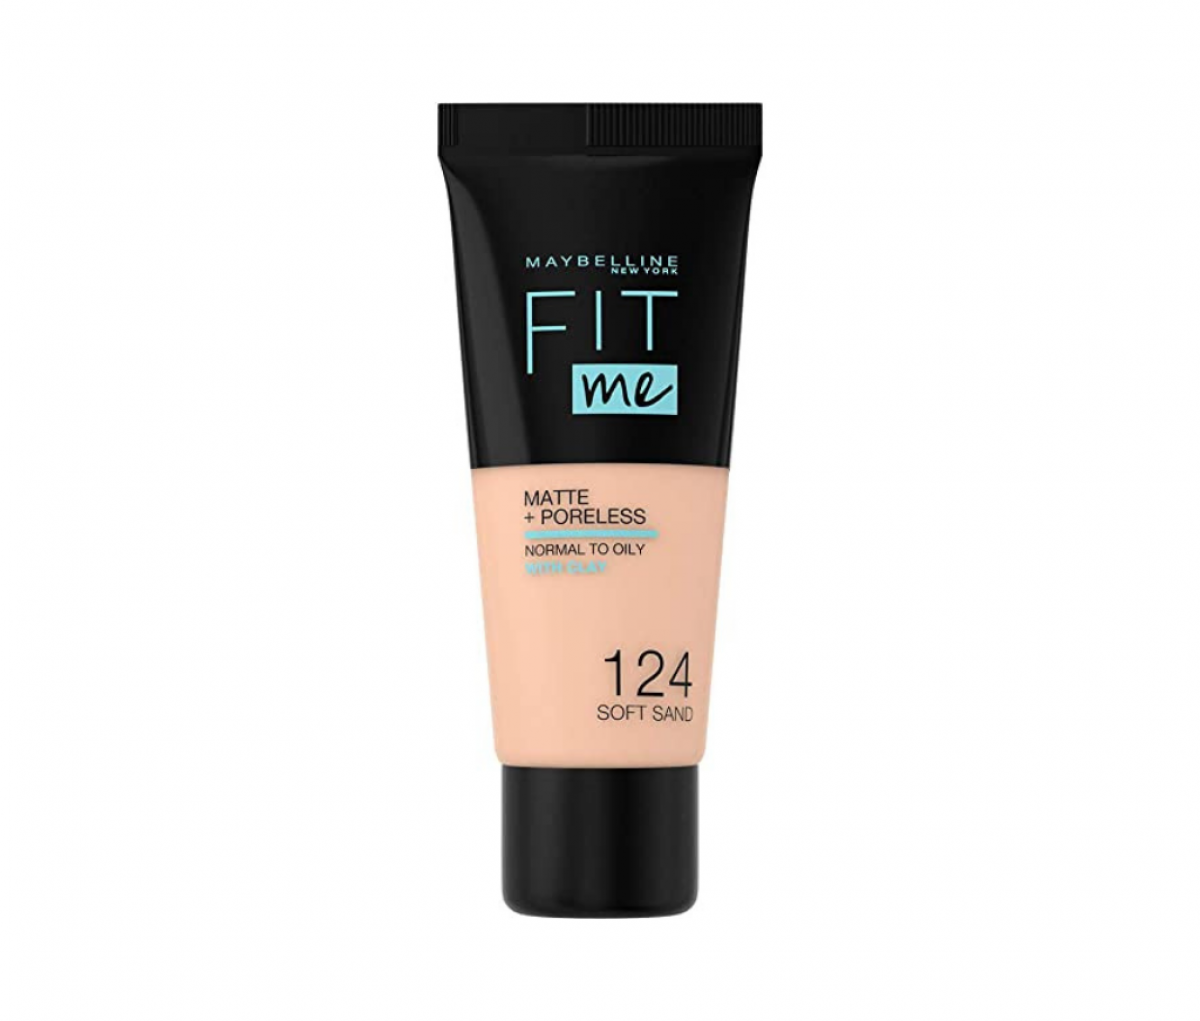 Maybelline 30ml Fit Me 124 Soft Sand Tube Foundation